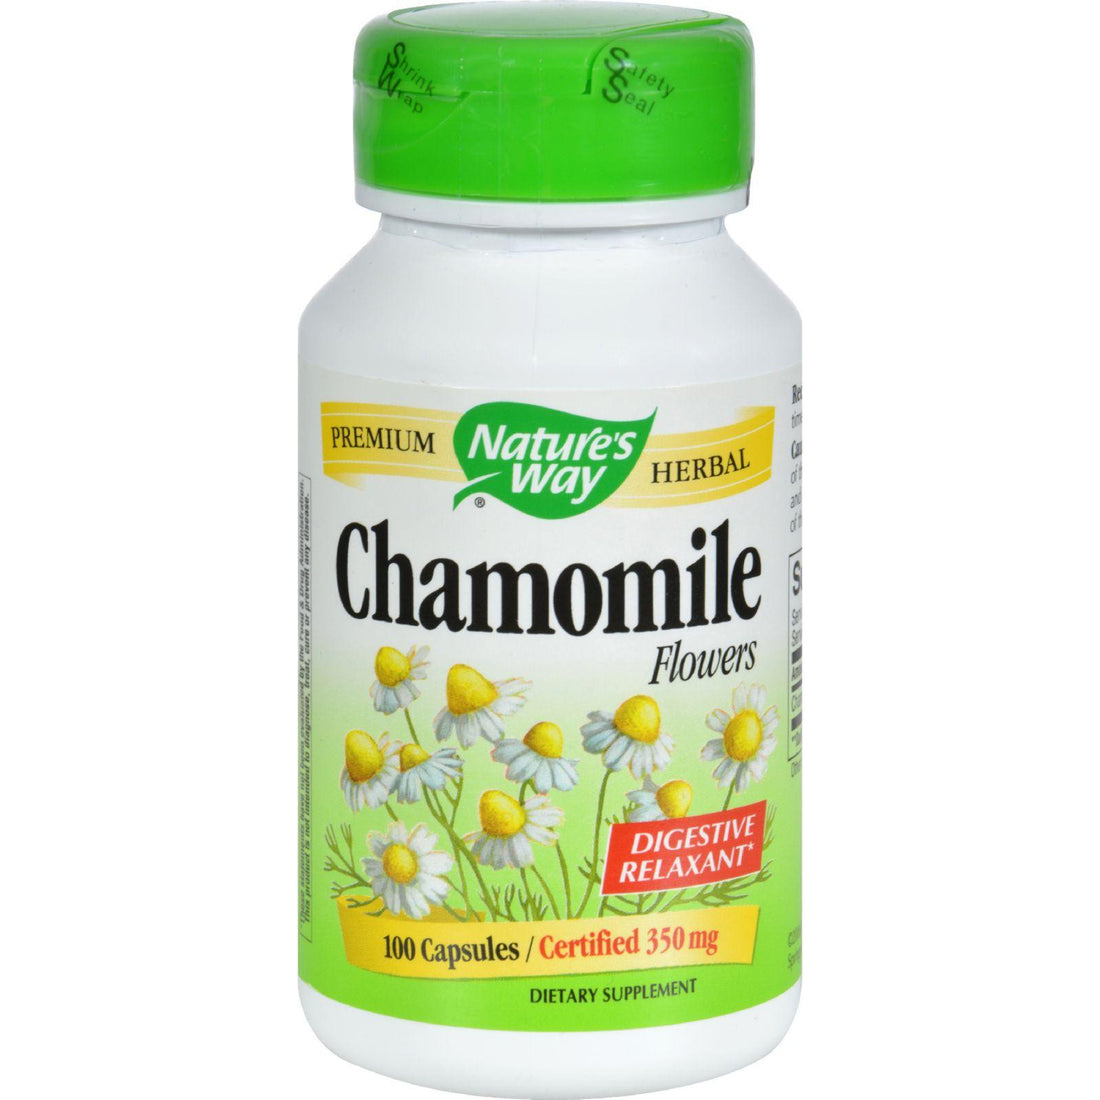 Mother Mantis: Nature's Way Chamomile Flowers - 100 Capsules Nature's Way